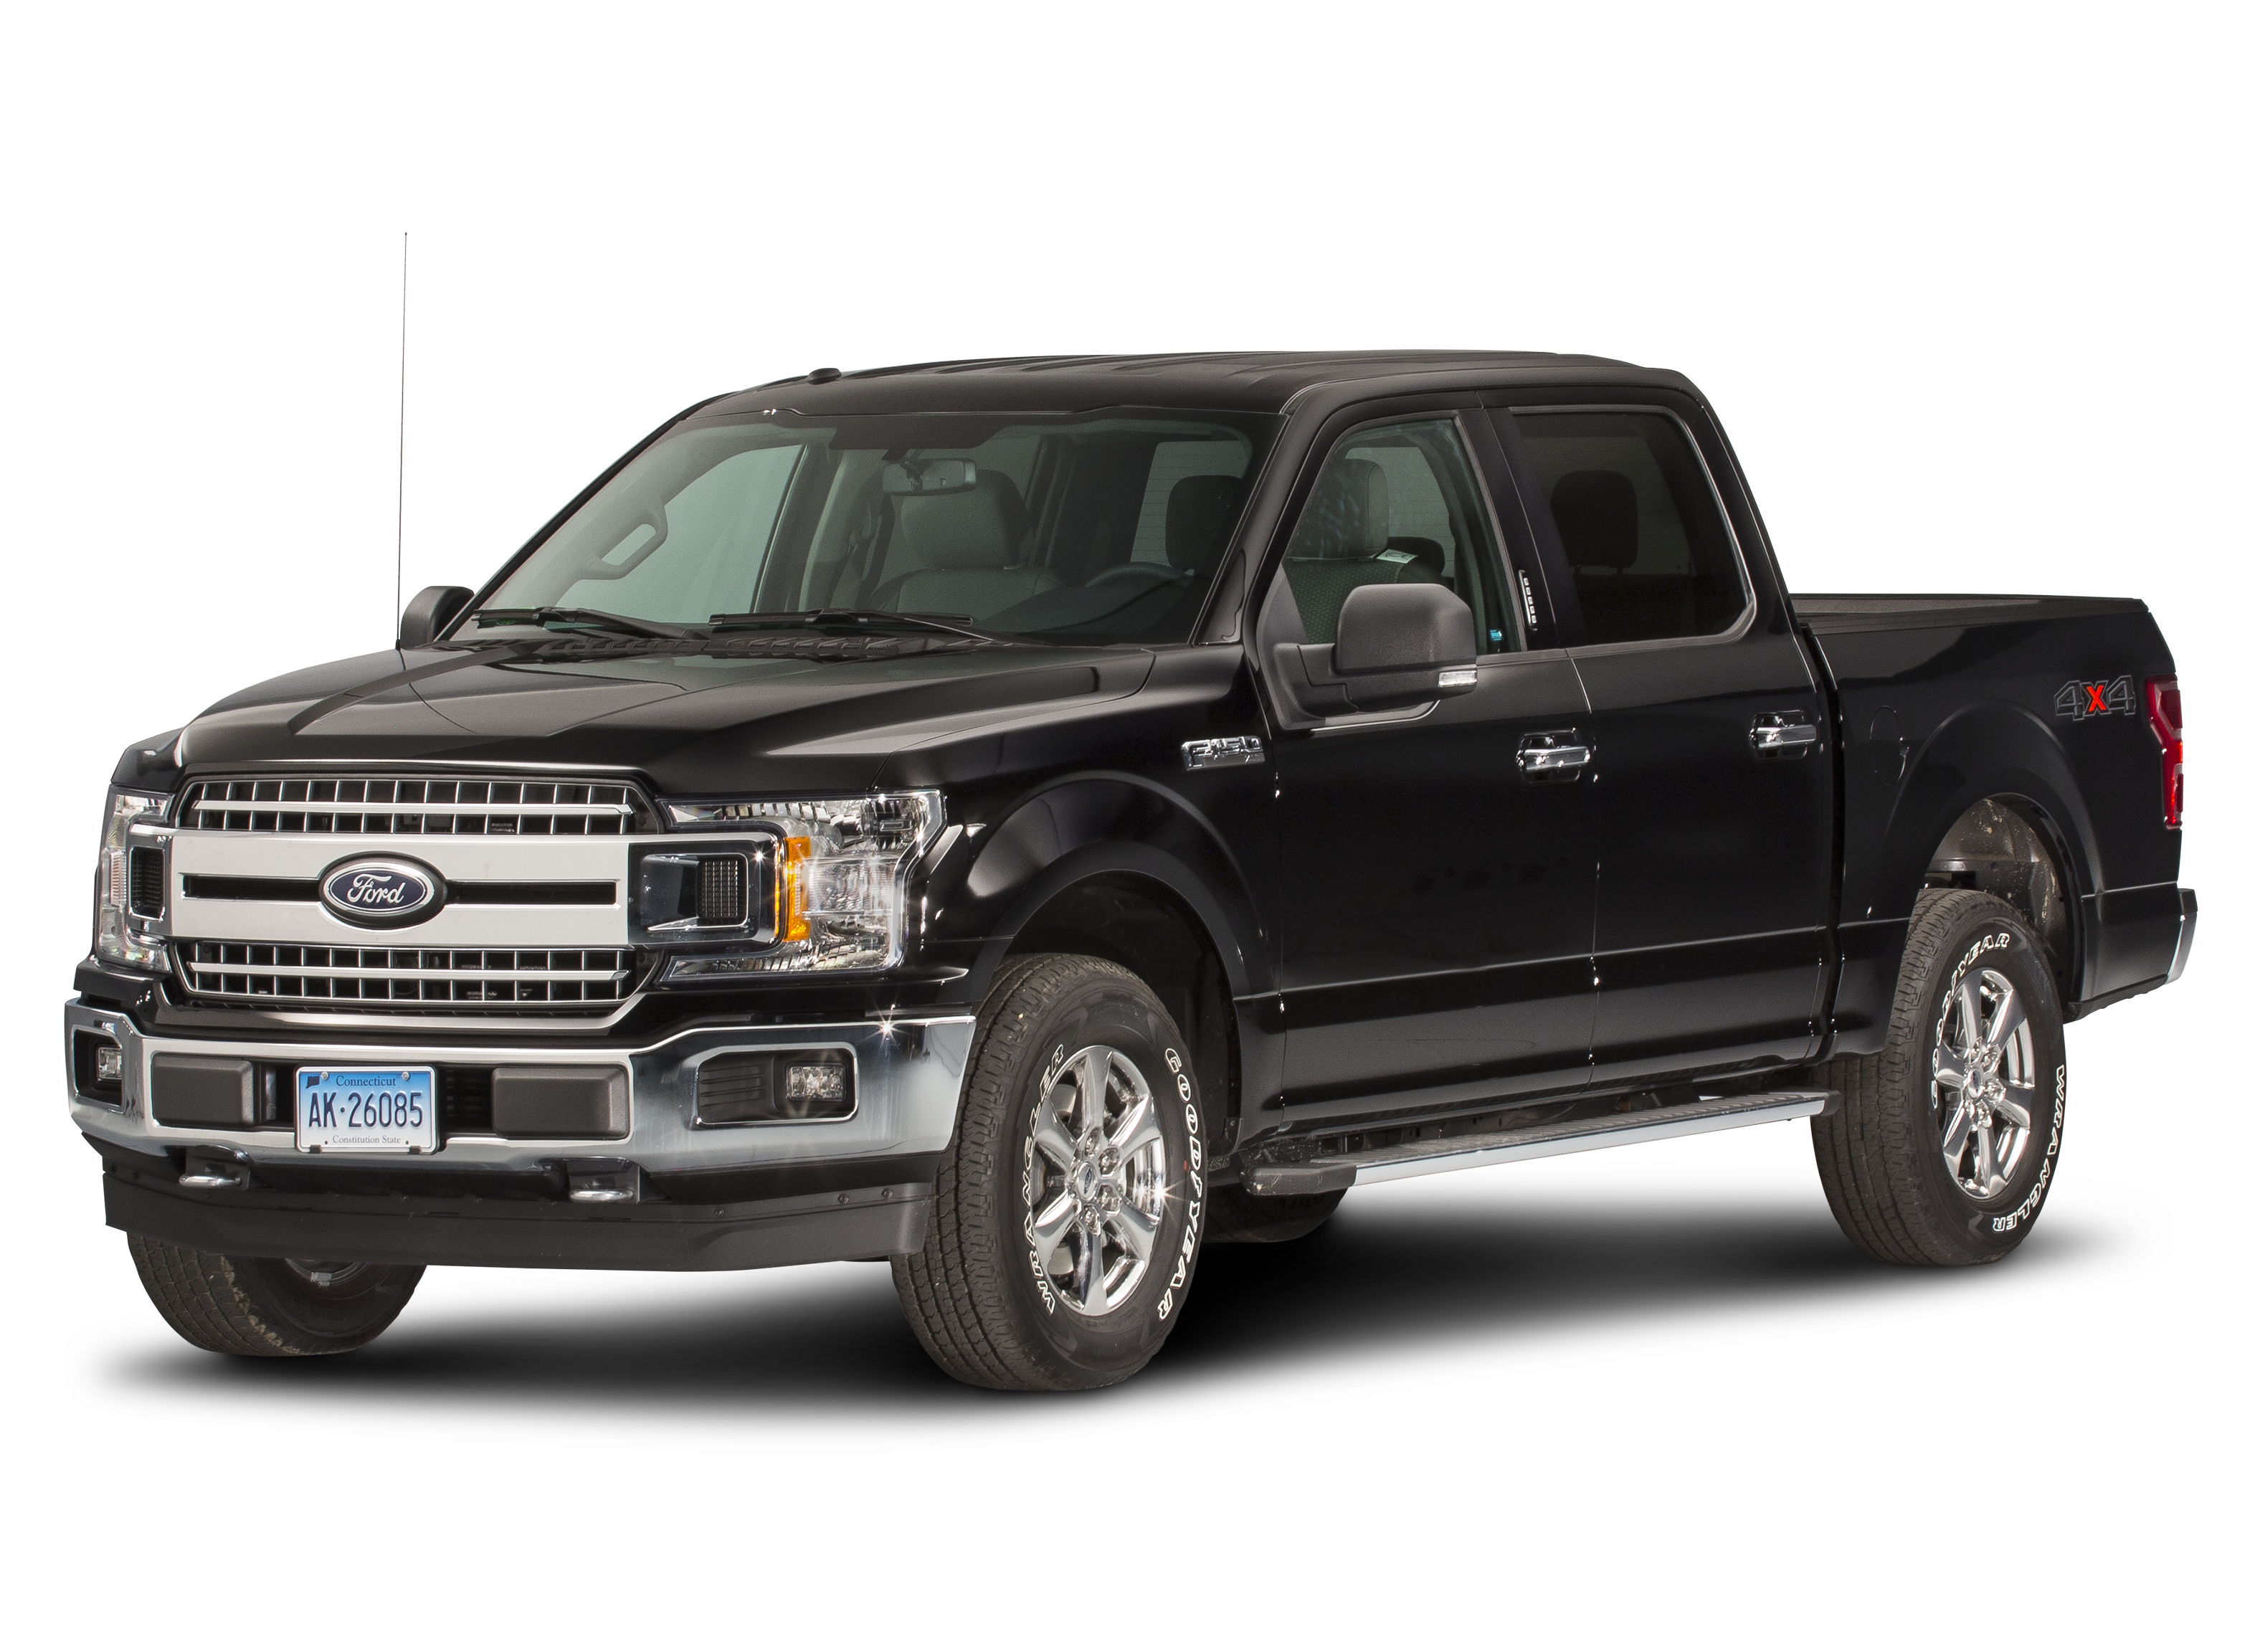 super expensive ford top pickup staging editor amazonaws f com https drive duty q josh the most platinum url new cars world trucks morris in